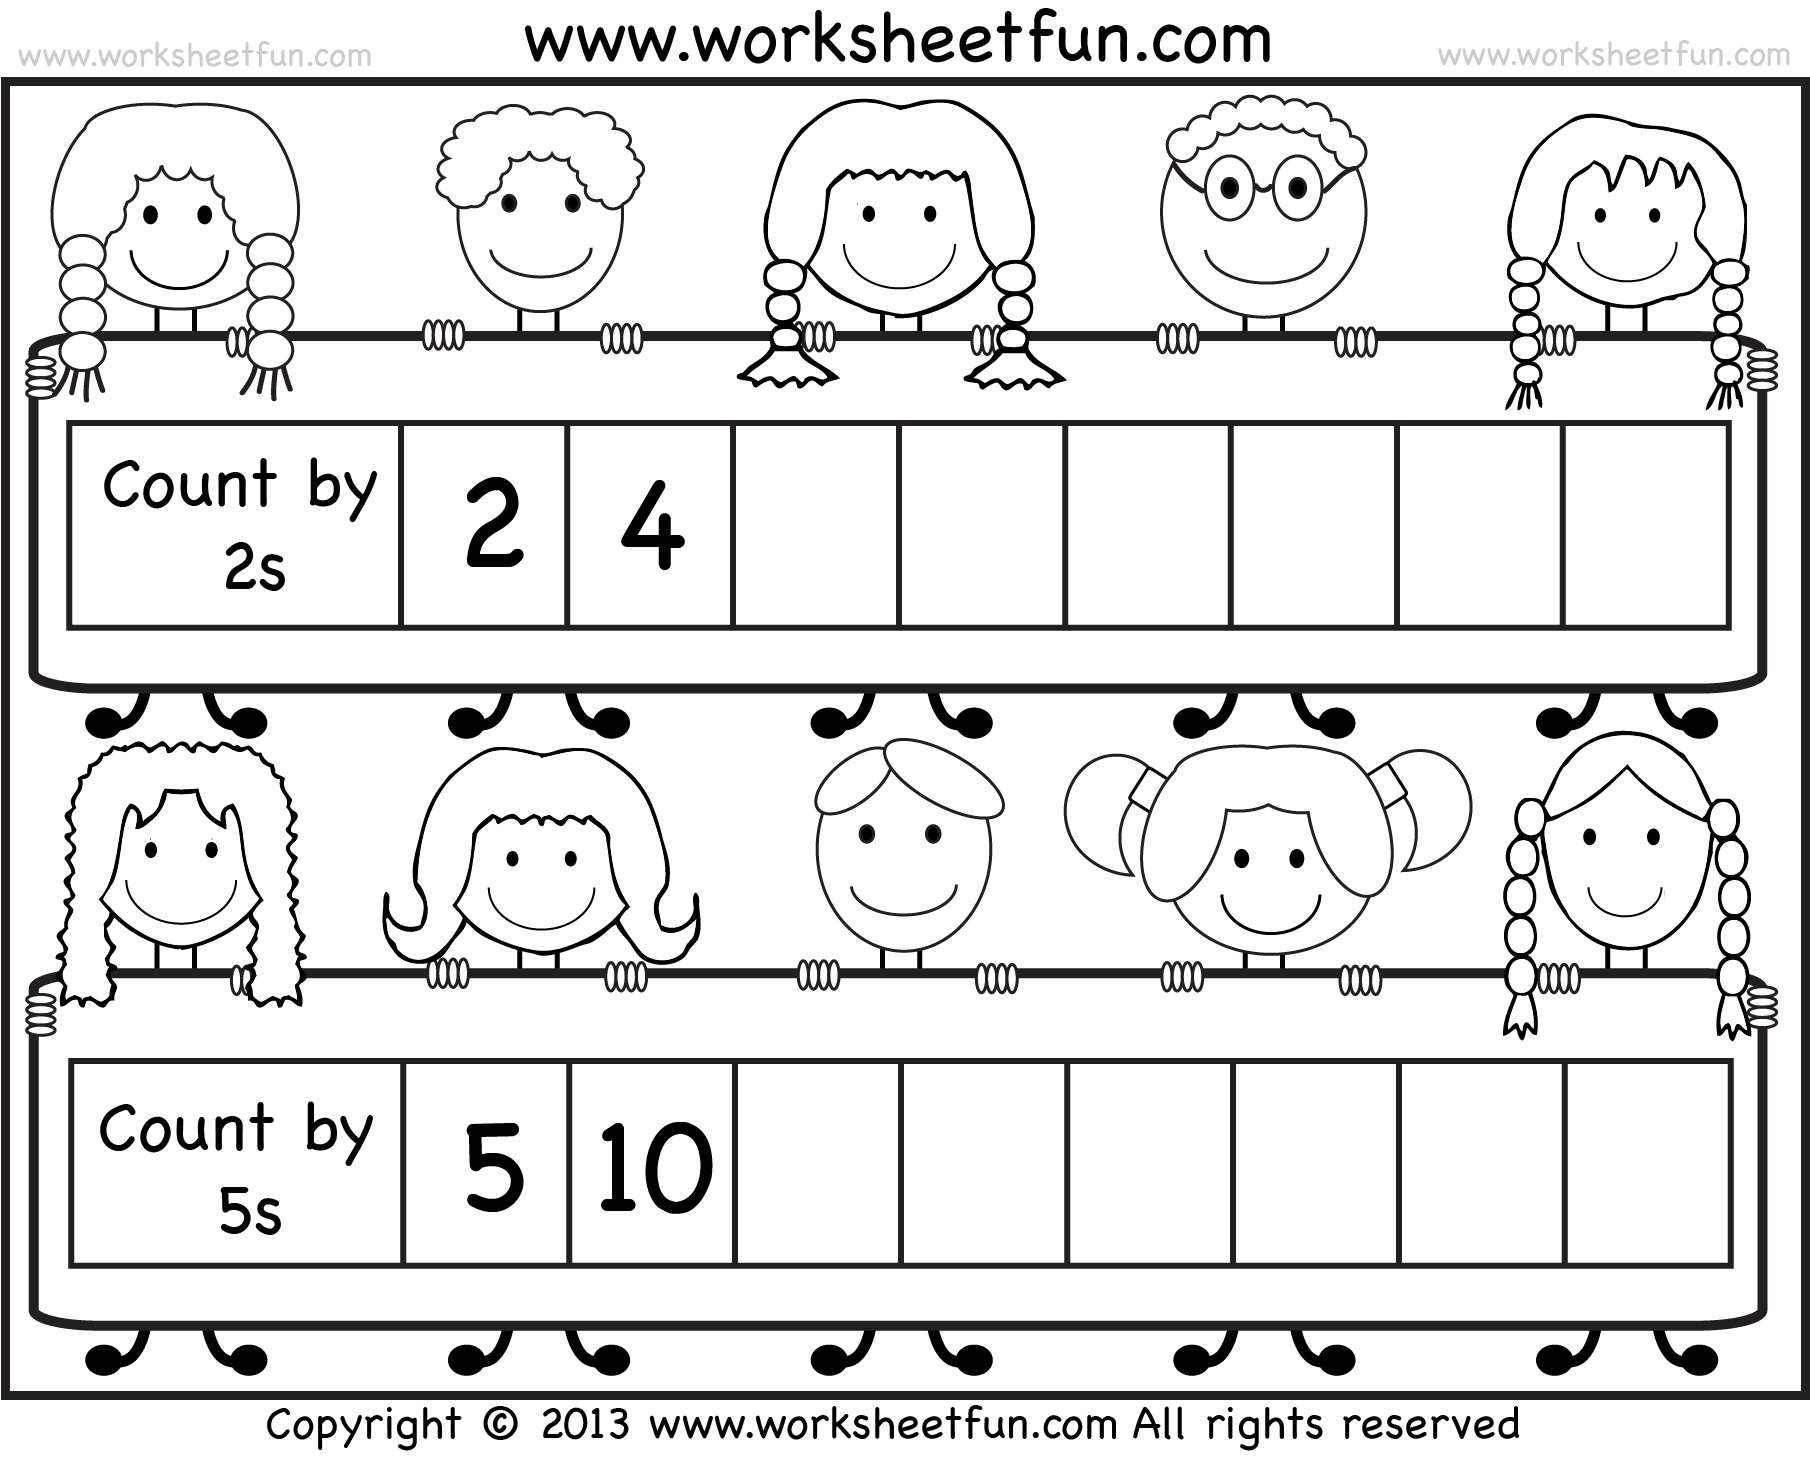 6 best images of printable count by 2 worksheets skip counting by 2s worksheet counting by 5s. Black Bedroom Furniture Sets. Home Design Ideas